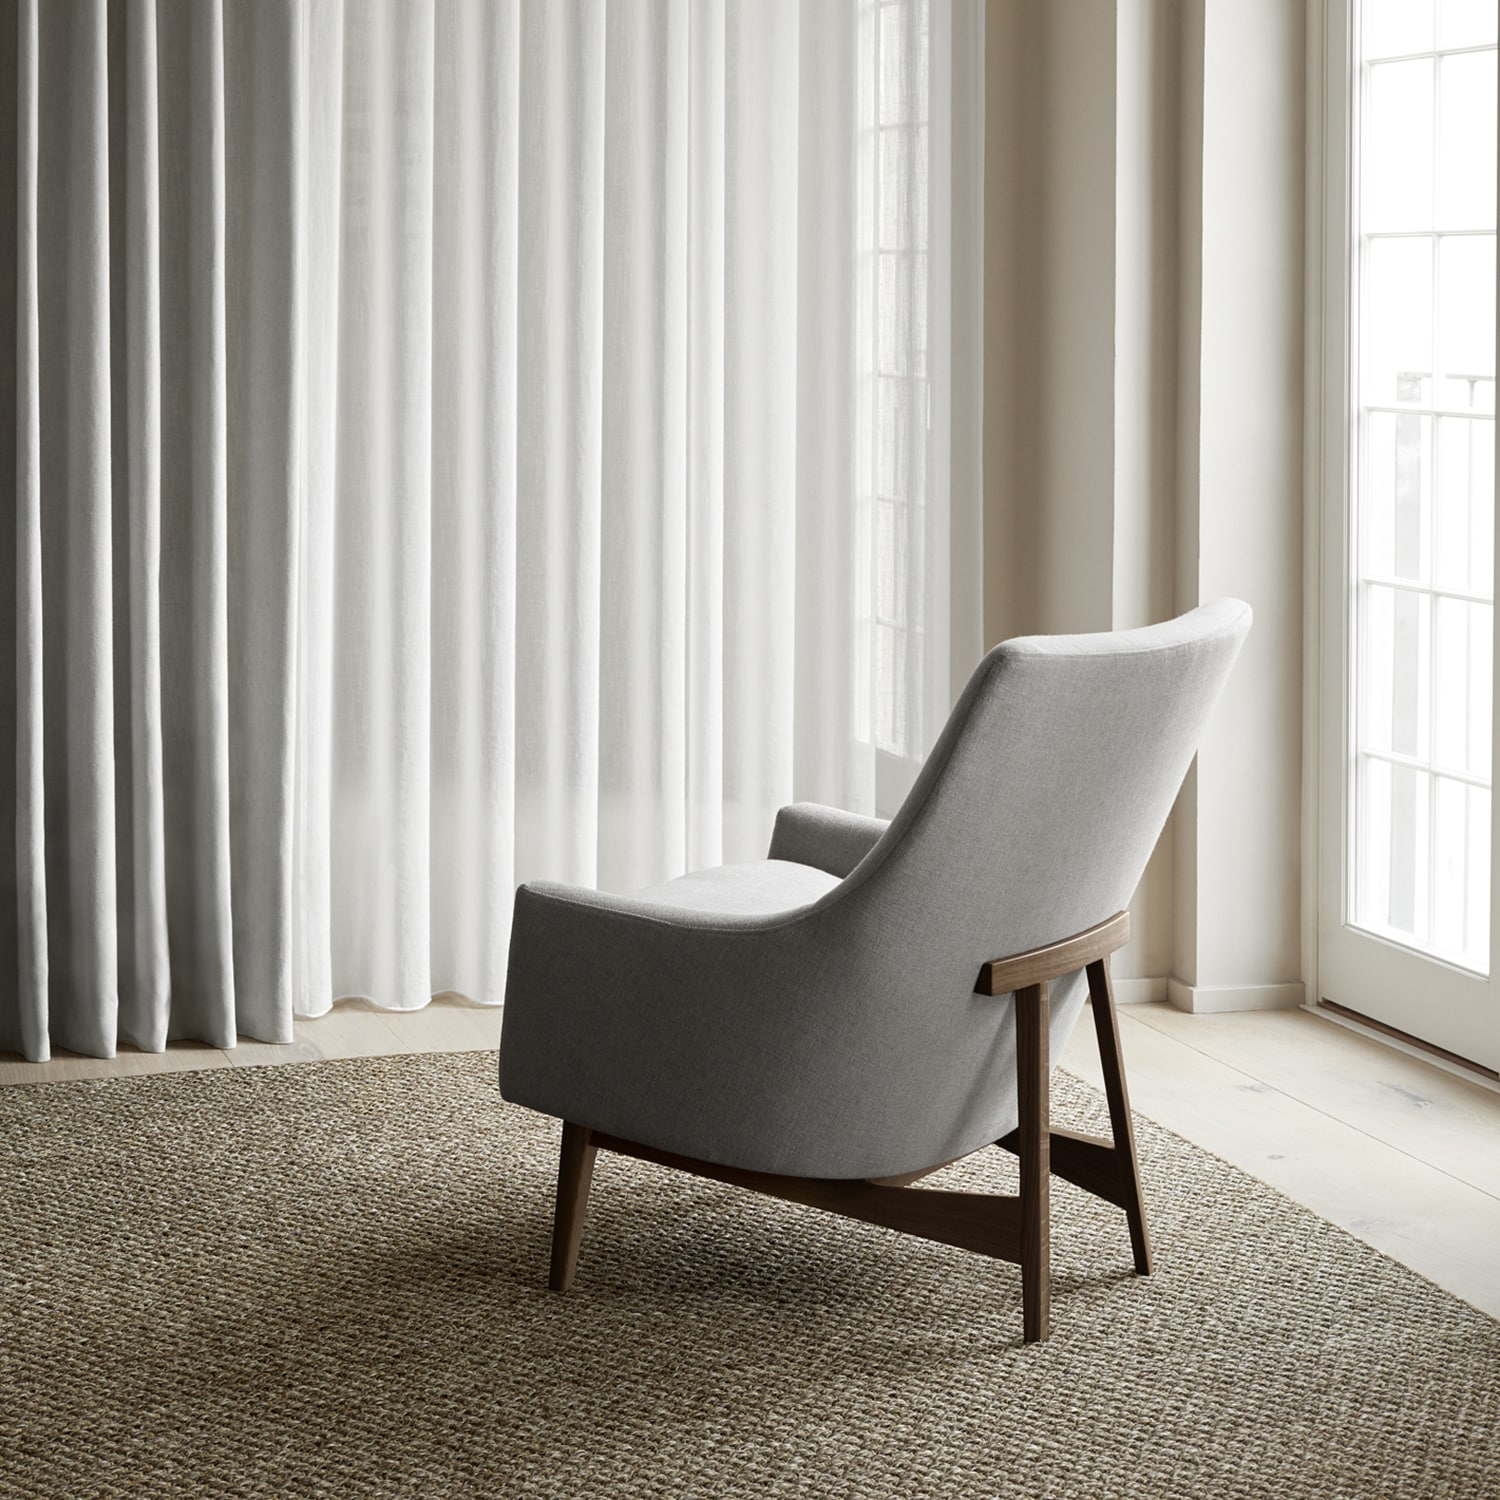 Introducing iconic pieces from Jens Risom. A master of mid-century modern